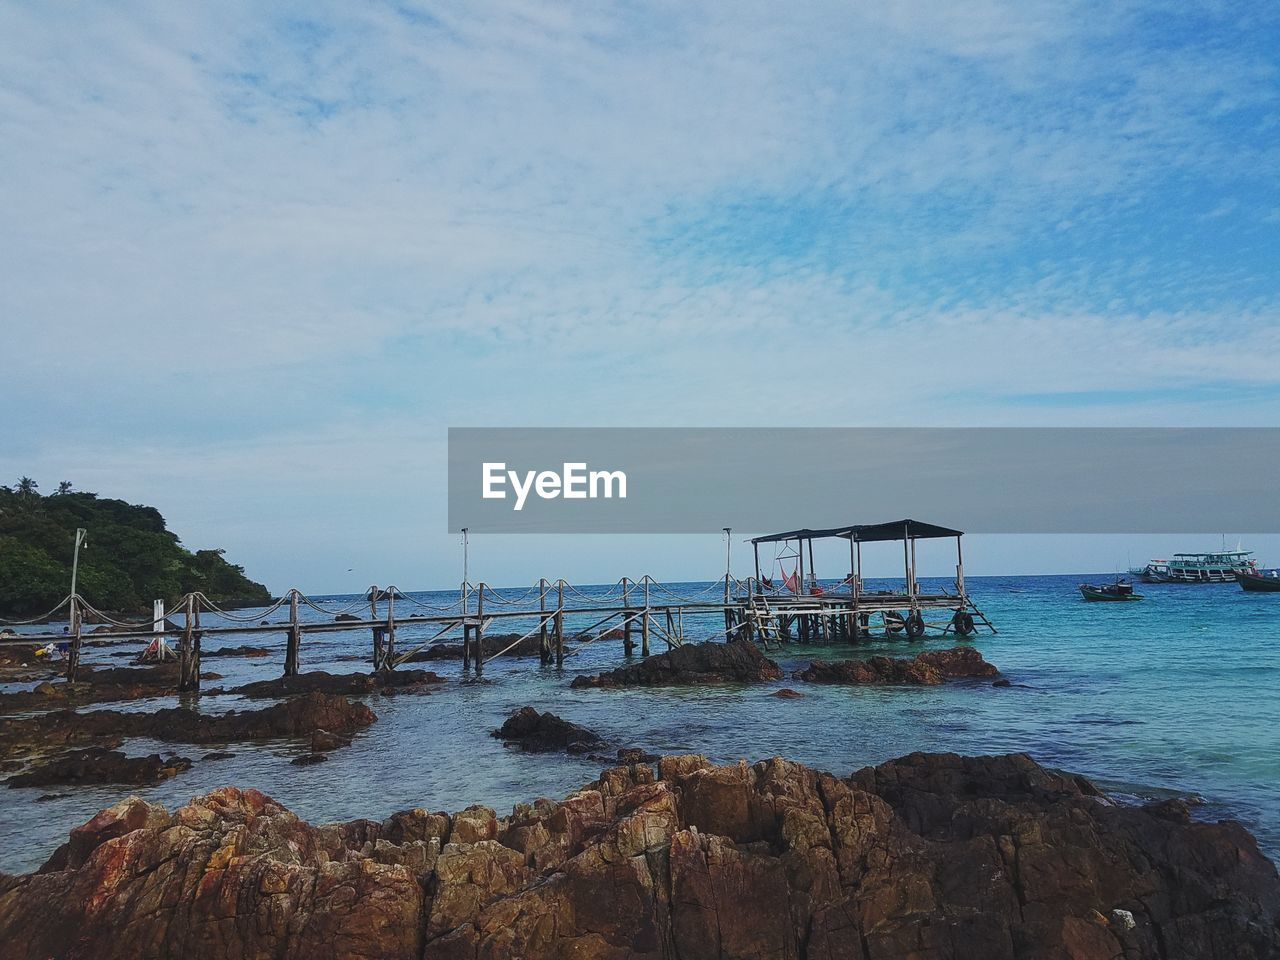 water, sky, sea, rock, architecture, cloud - sky, rock - object, beauty in nature, solid, nature, built structure, scenics - nature, beach, day, no people, land, tranquil scene, transportation, outdoors